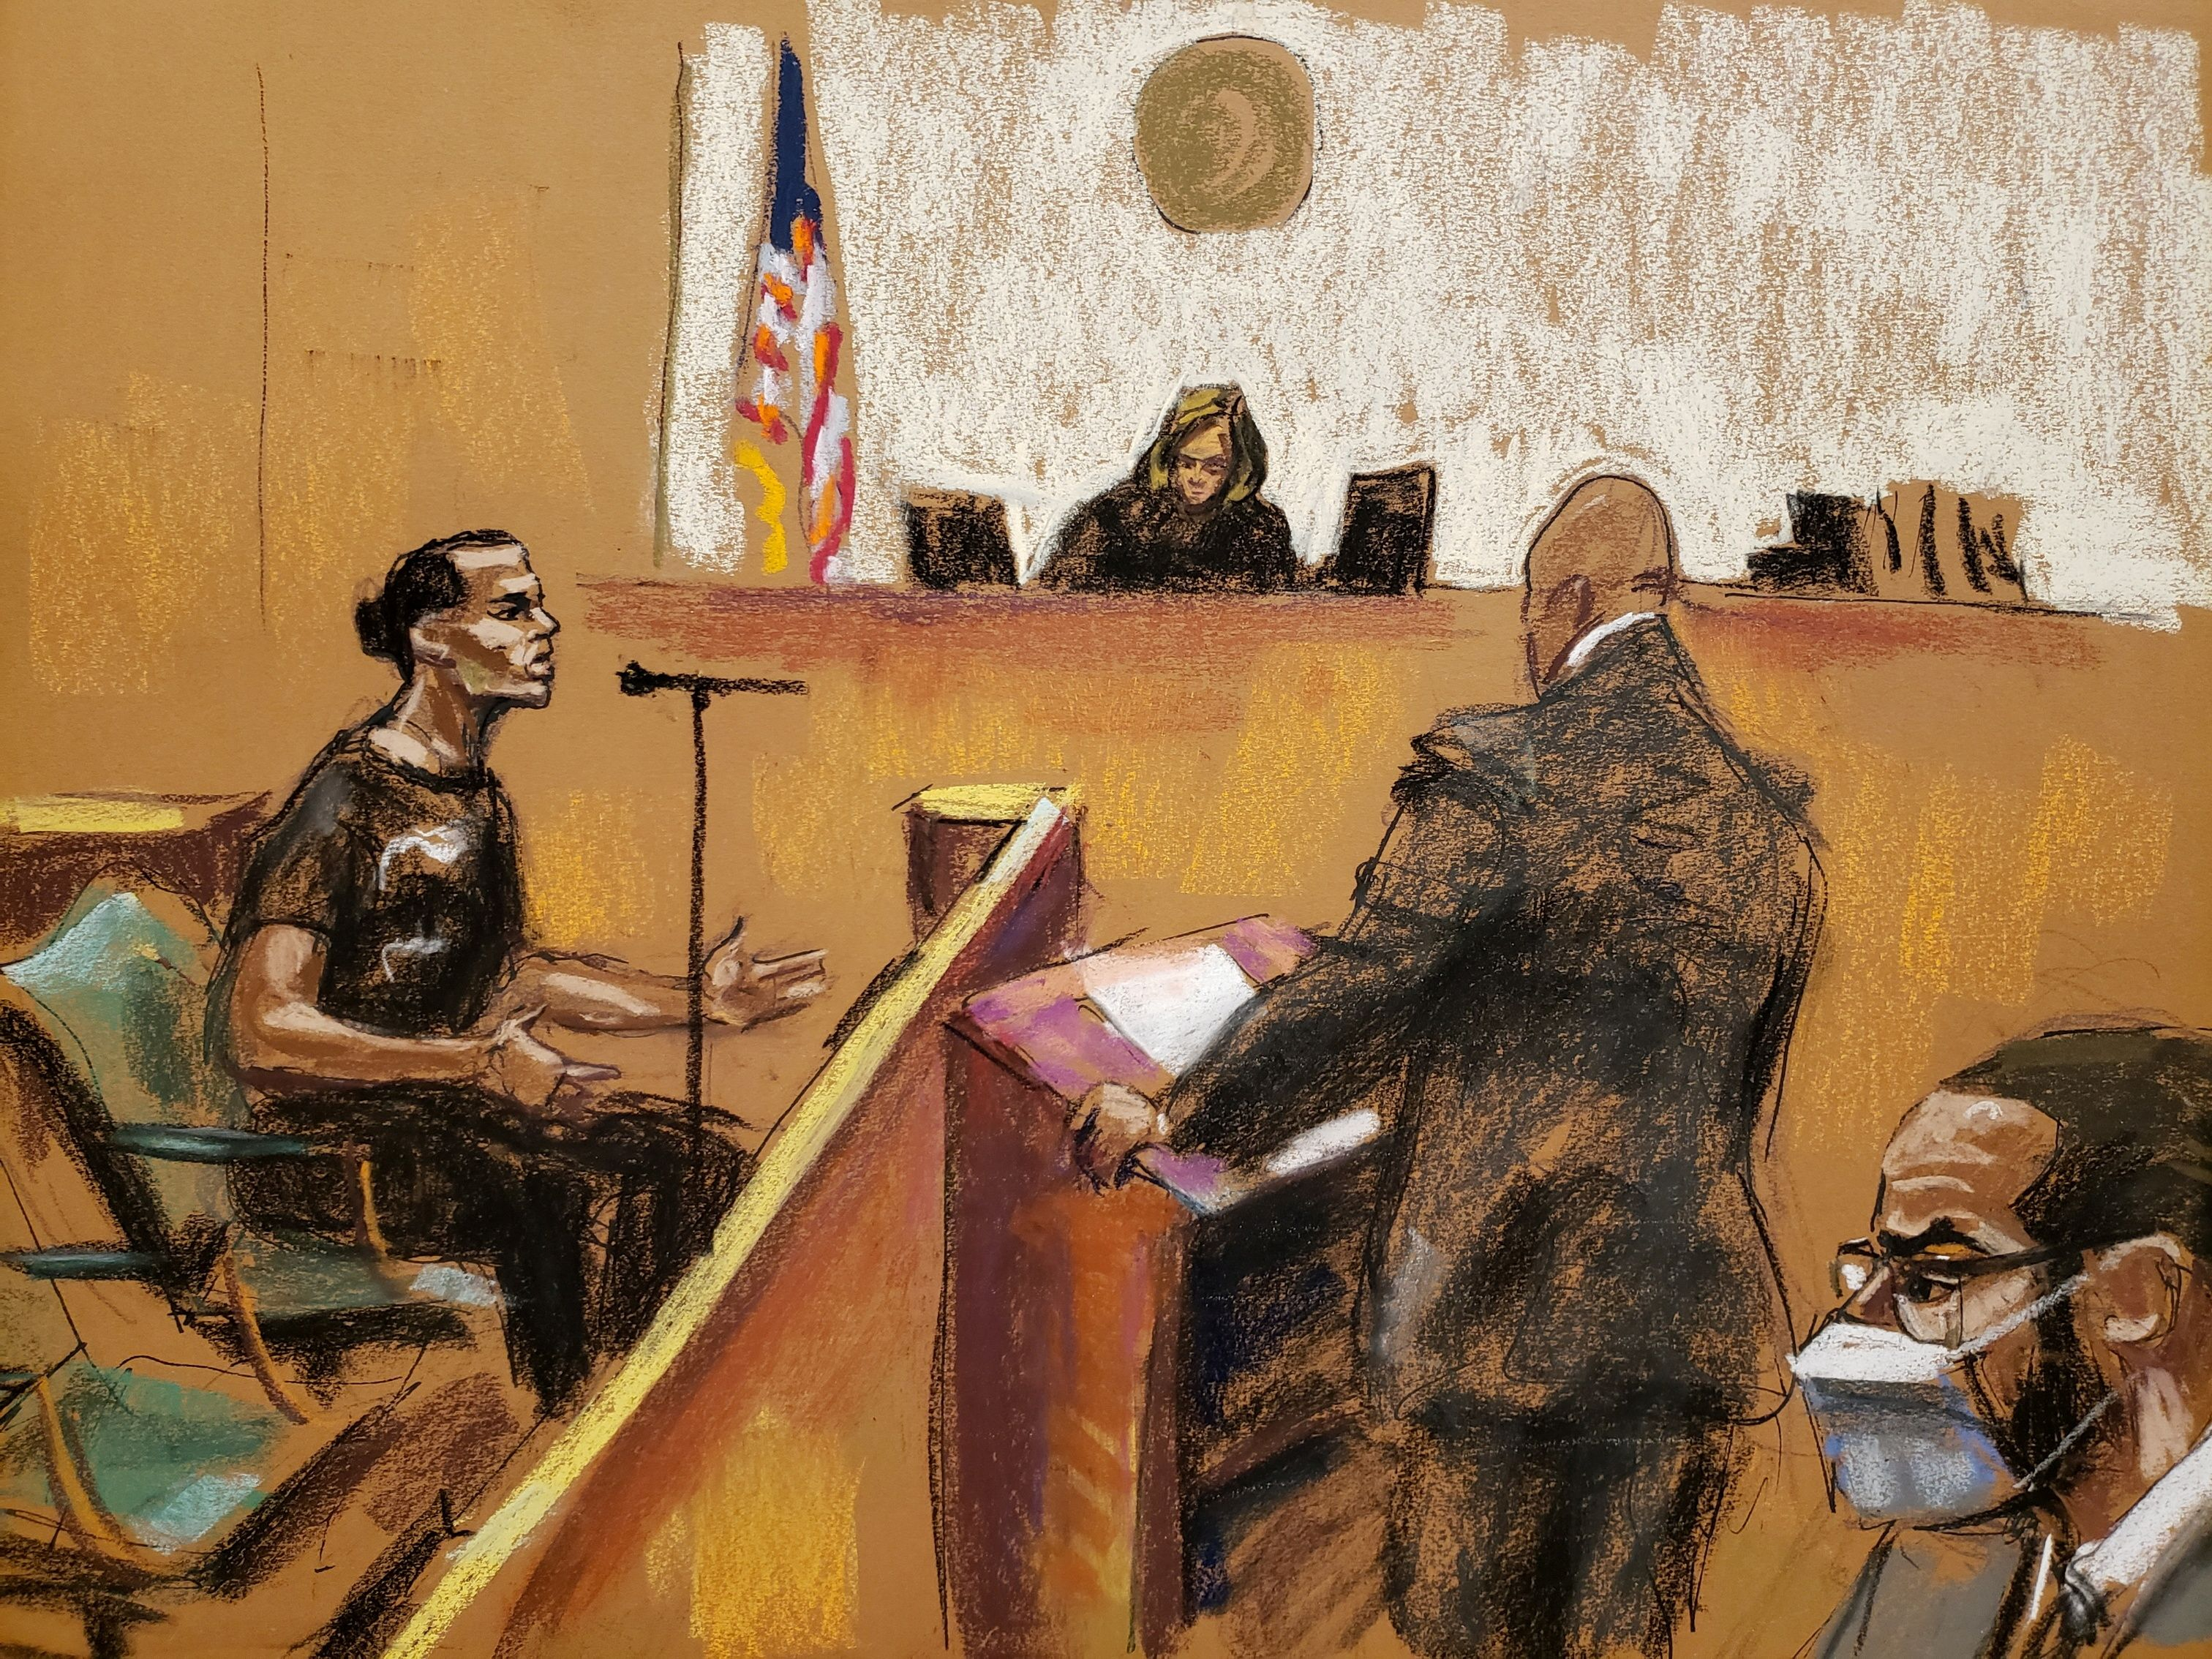 Defense attorney Calvin Scholar questions witness Dhanai Ramnaran at R. Kelly's sex abuse trial at Brooklyn's Federal District Court in a courtroom sketch in New York, U.S., September 20, 2021. REUTERS/Jane Rosenberg